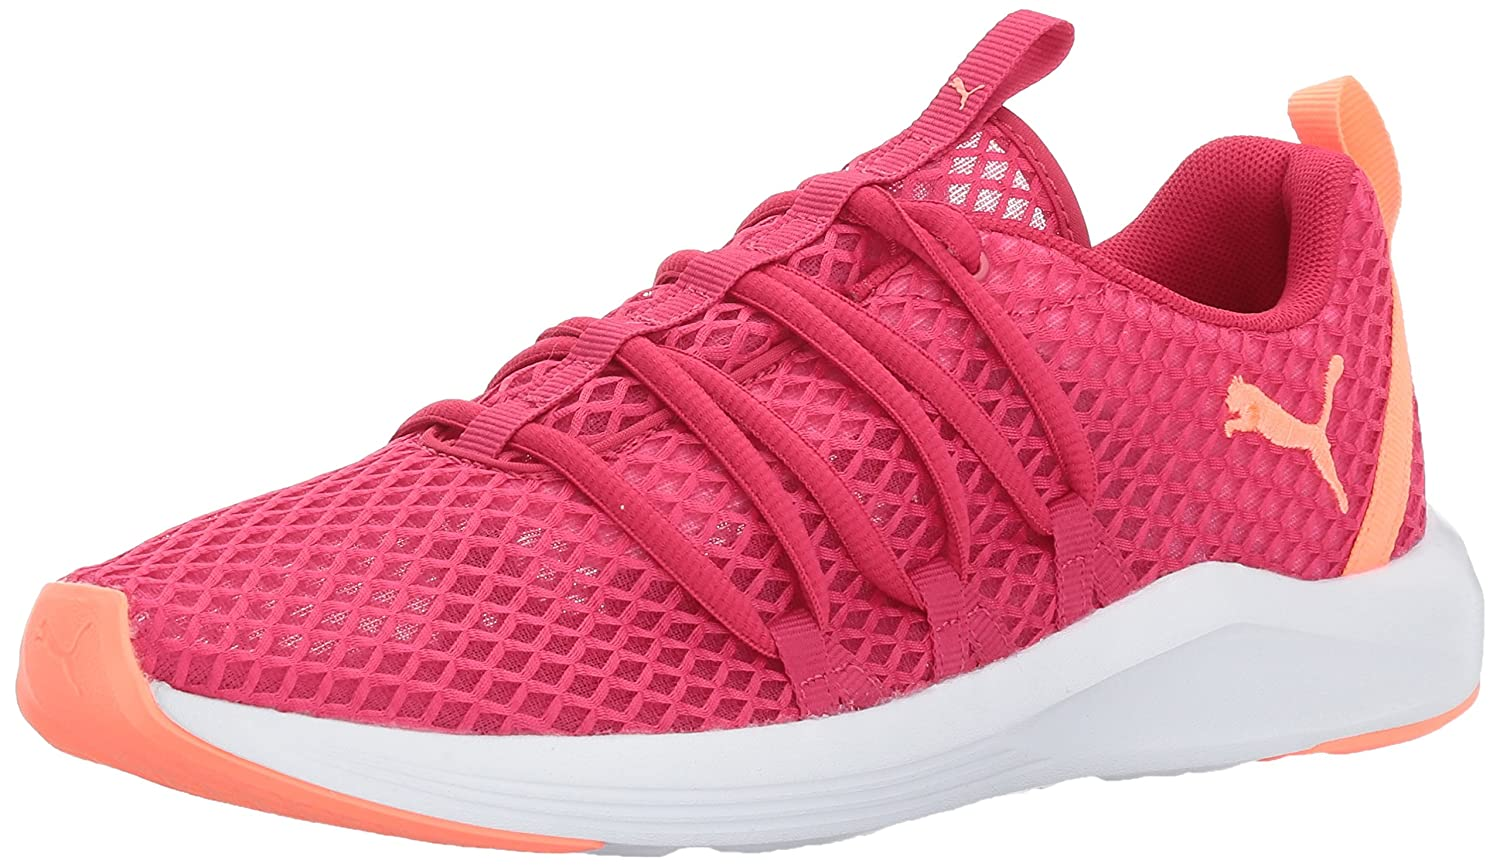 PUMA Women's Prowl Alt Mesh Wn Sneaker B01N2UGHXN 6.5 M US|Love Potion-puma White